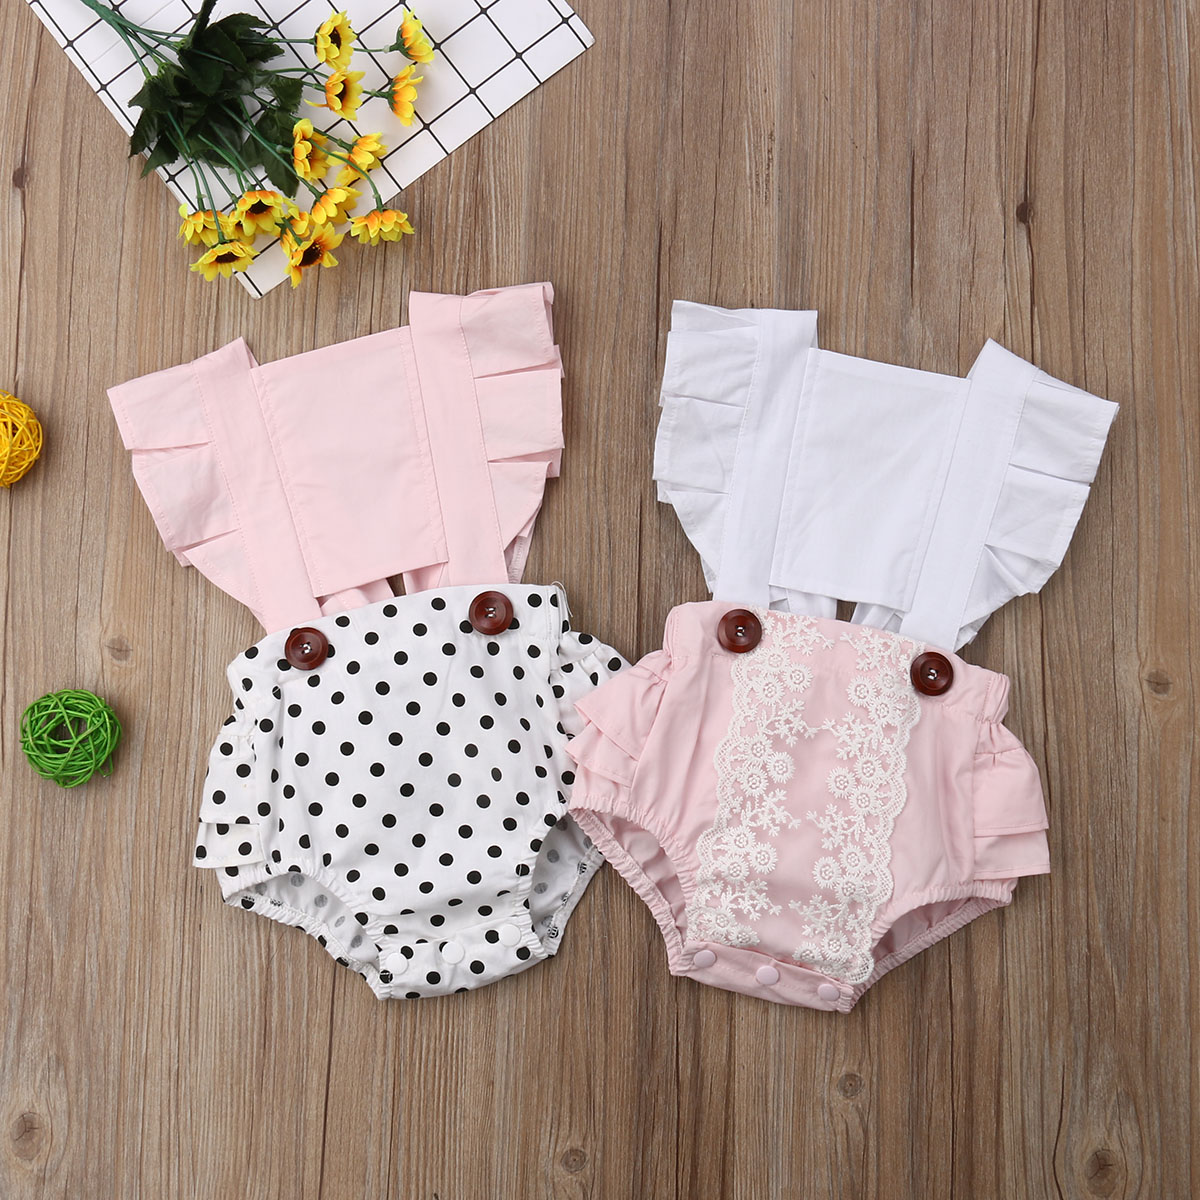 Newborn Infant Baby Girl Clothes Lace Splice Romper Backless Jumpsuit Outfit Sunsuit Baby Clothing Newborn  Infant Baby Girl Clothes Lace Splice Romper Backless Jumpsuit Outfit Sunsuit Baby Clothing